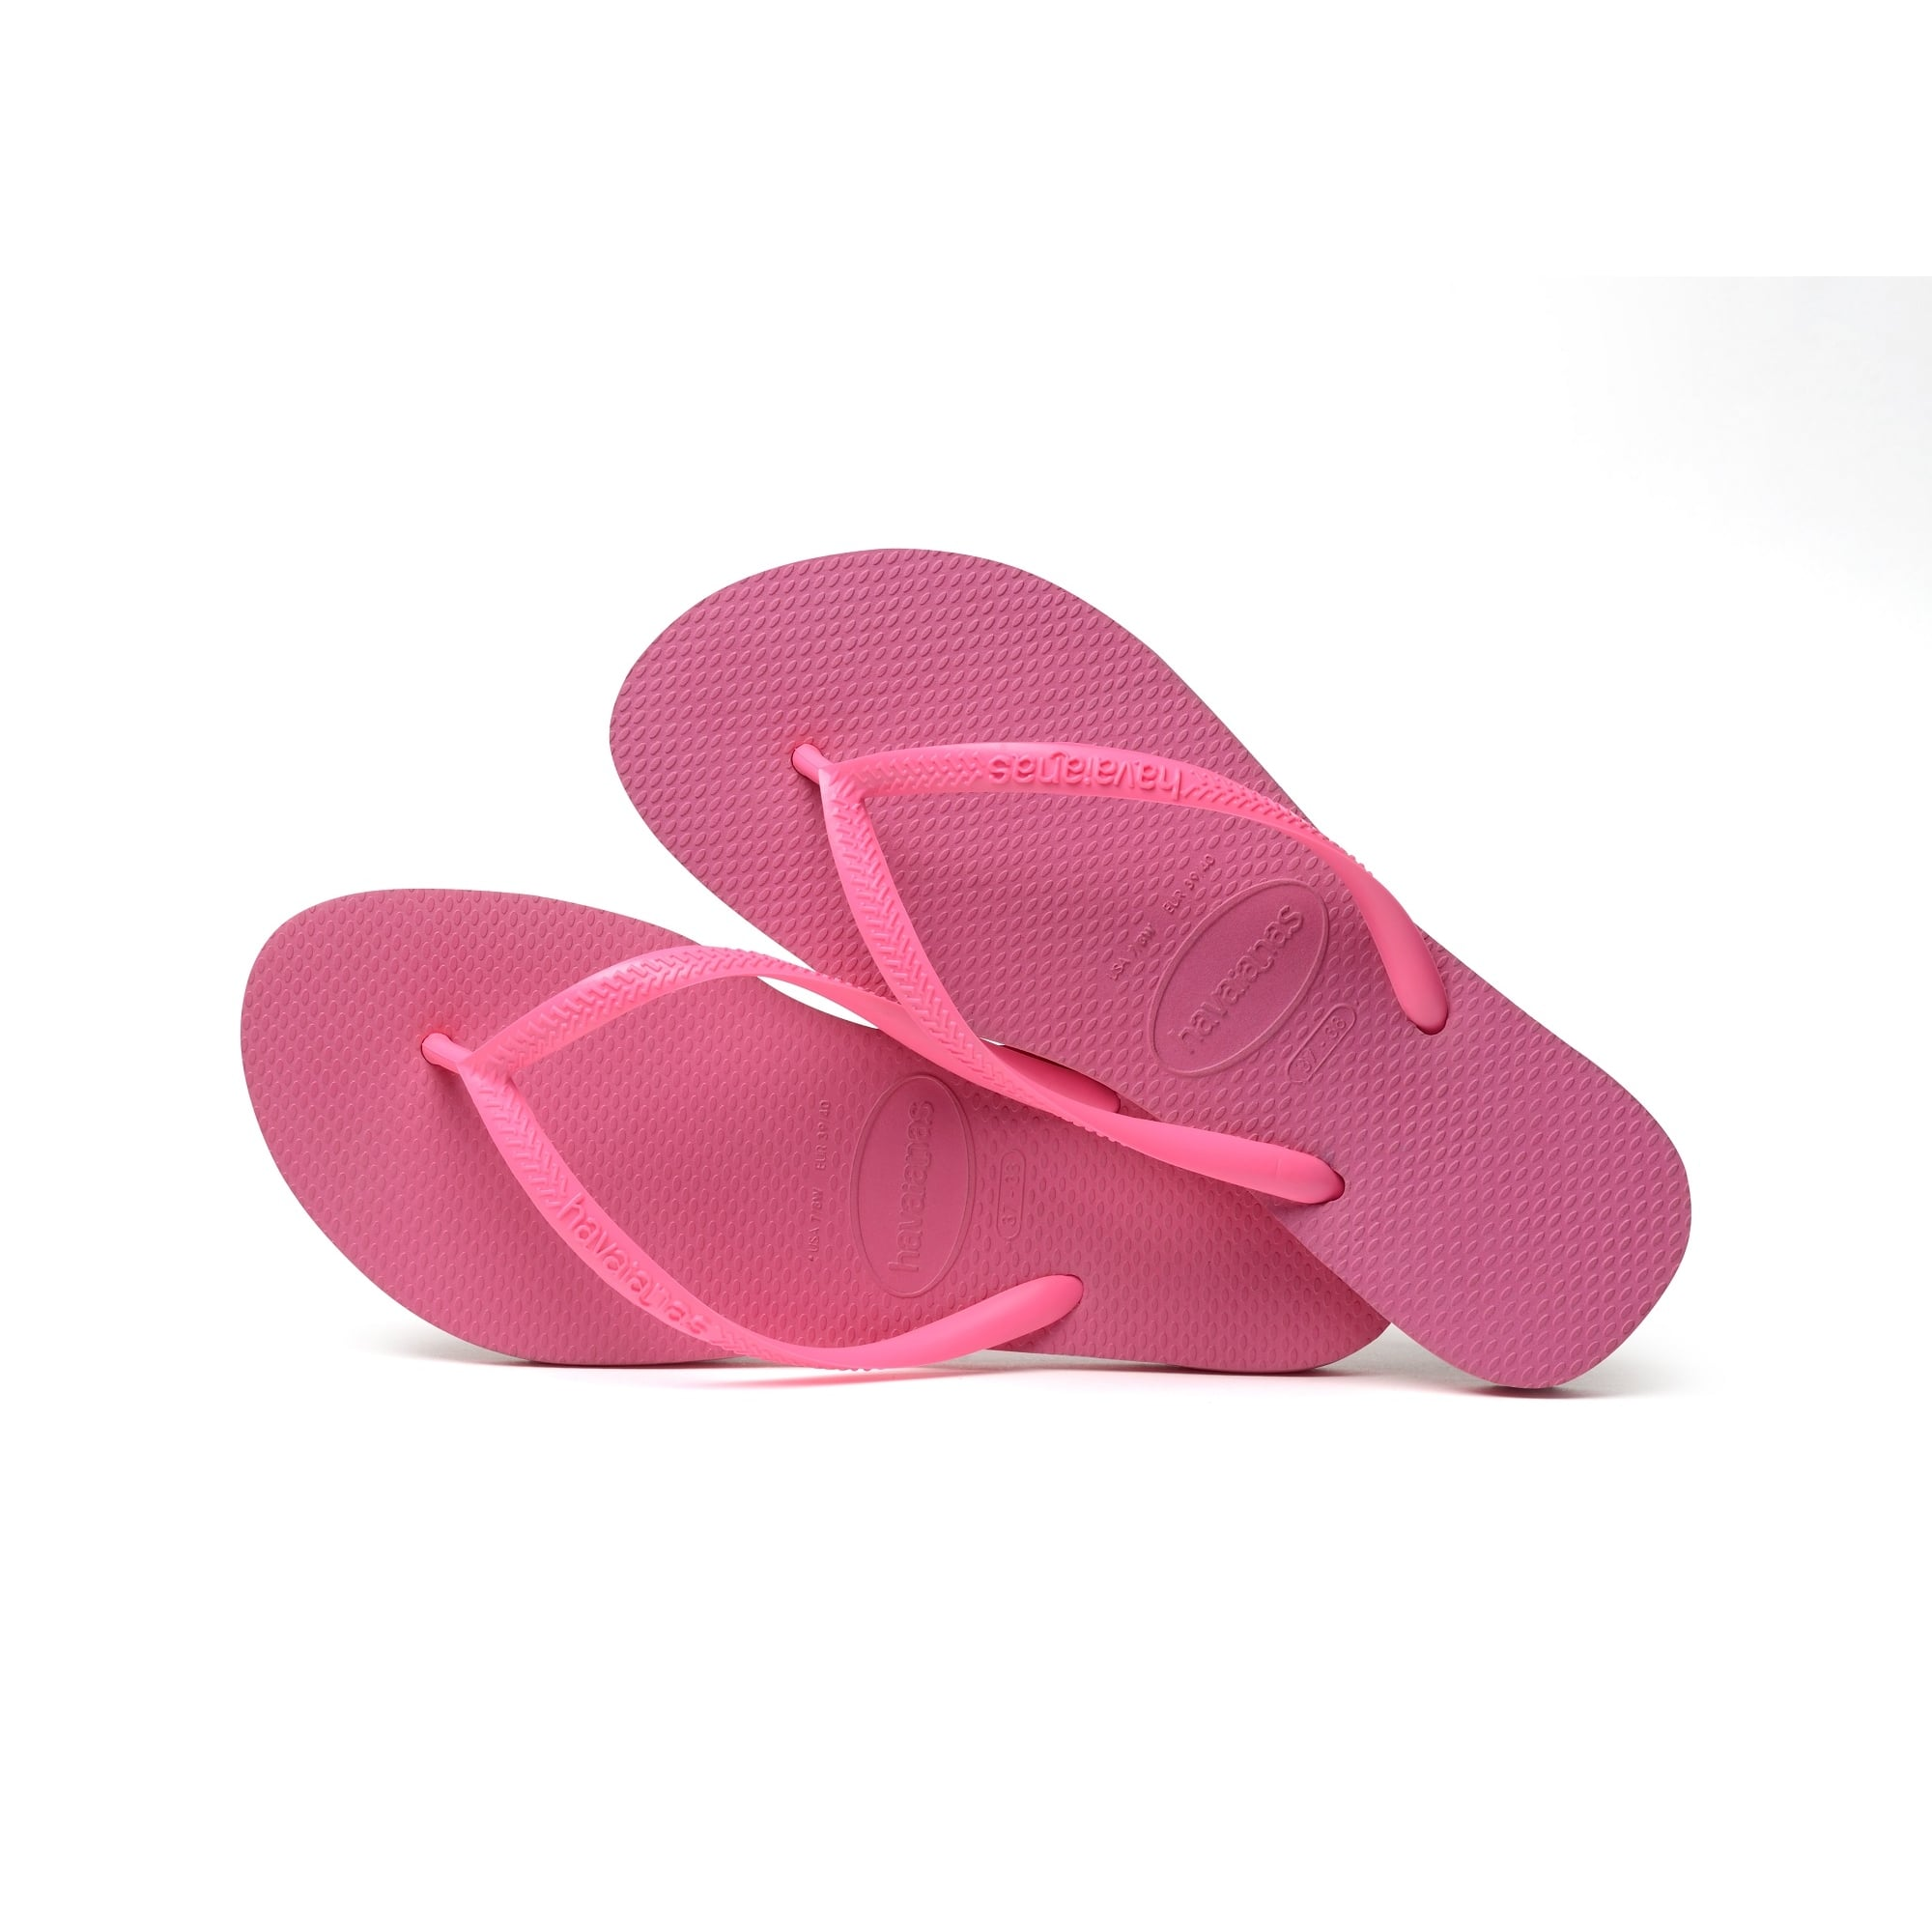 Havaianas Slim Flip Flop in Shocking Pink  d9f25a0d9014